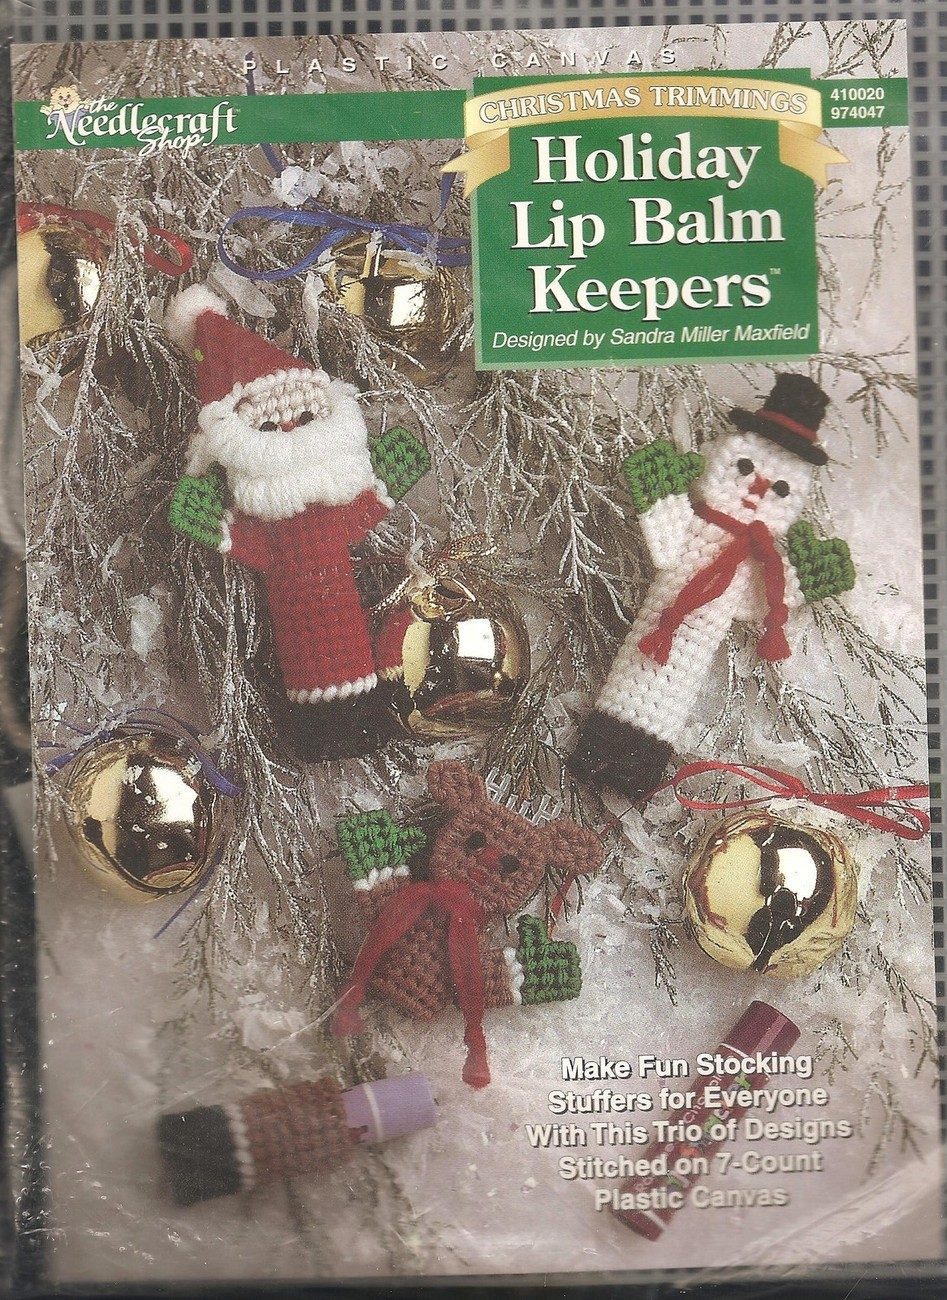 Primary image for CRAFTS Needlecraft Shop Christmas Trimmings Holiday Lip Balm Keepers Kit #410020